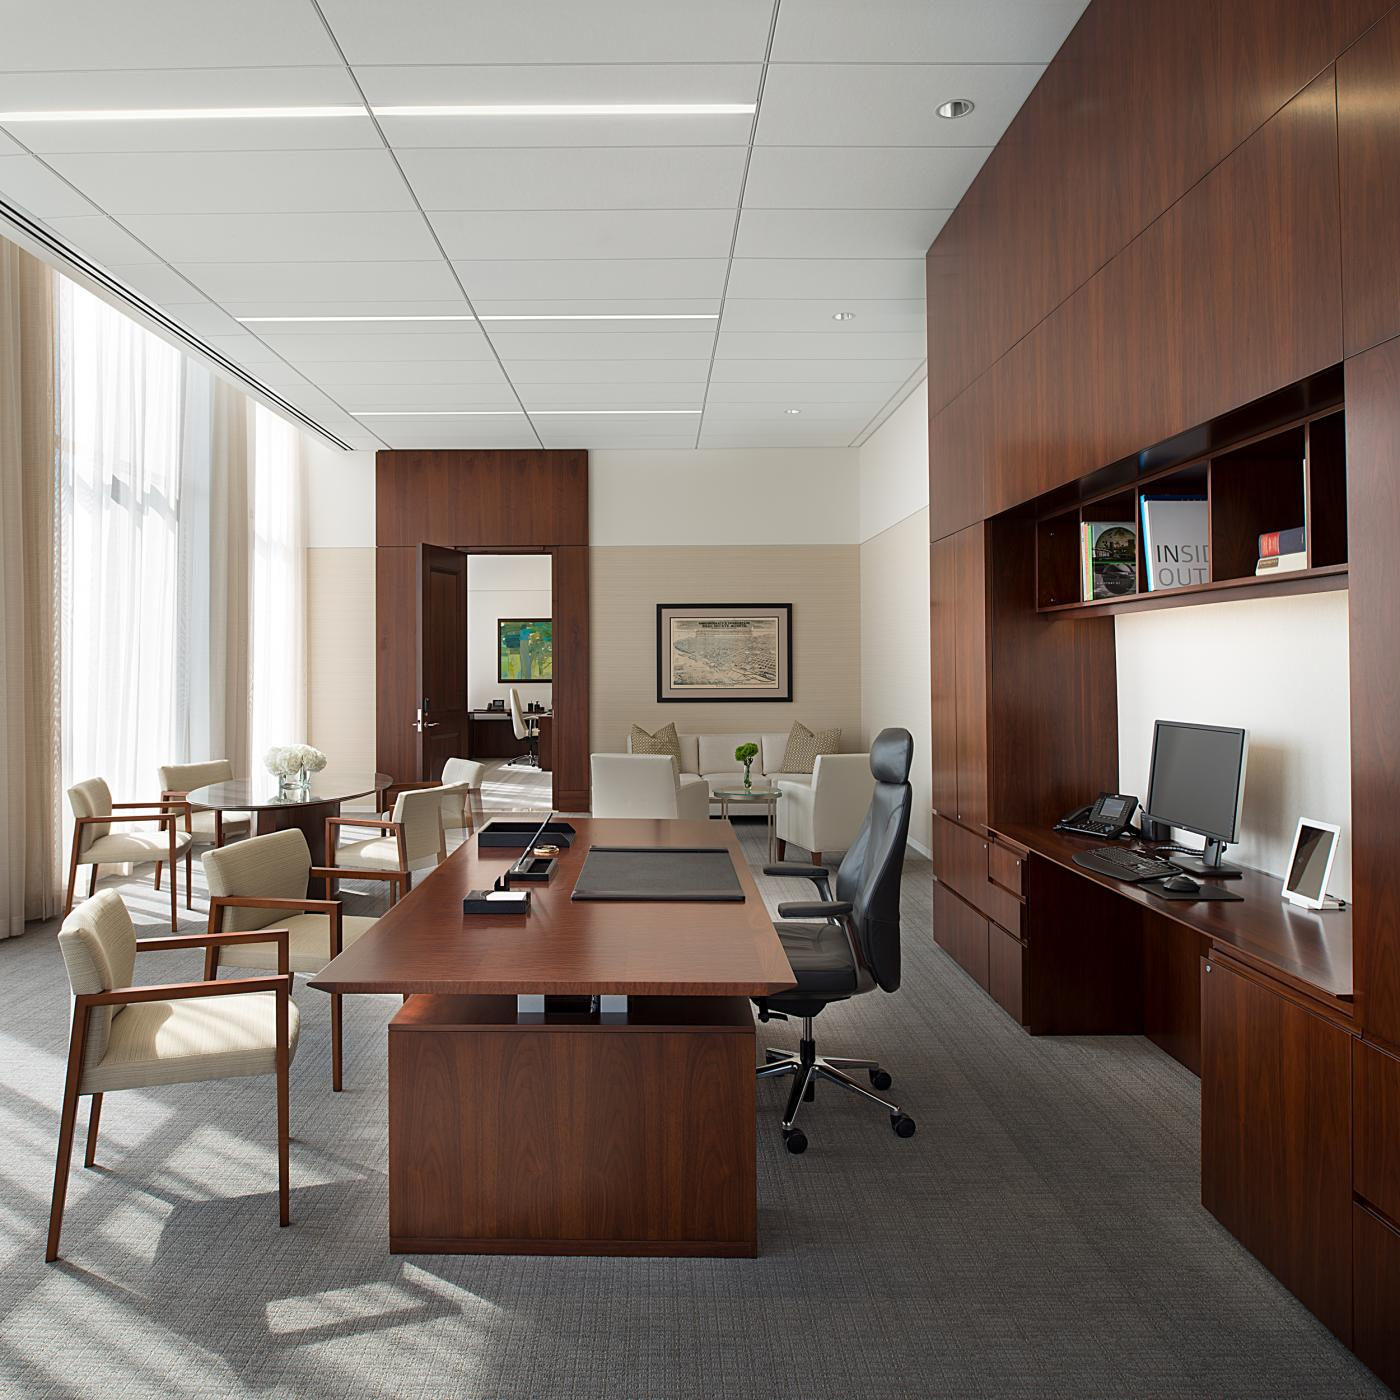 Adjustable-height desks were custom-designed to meet the aesthetic and functional needs of the project.